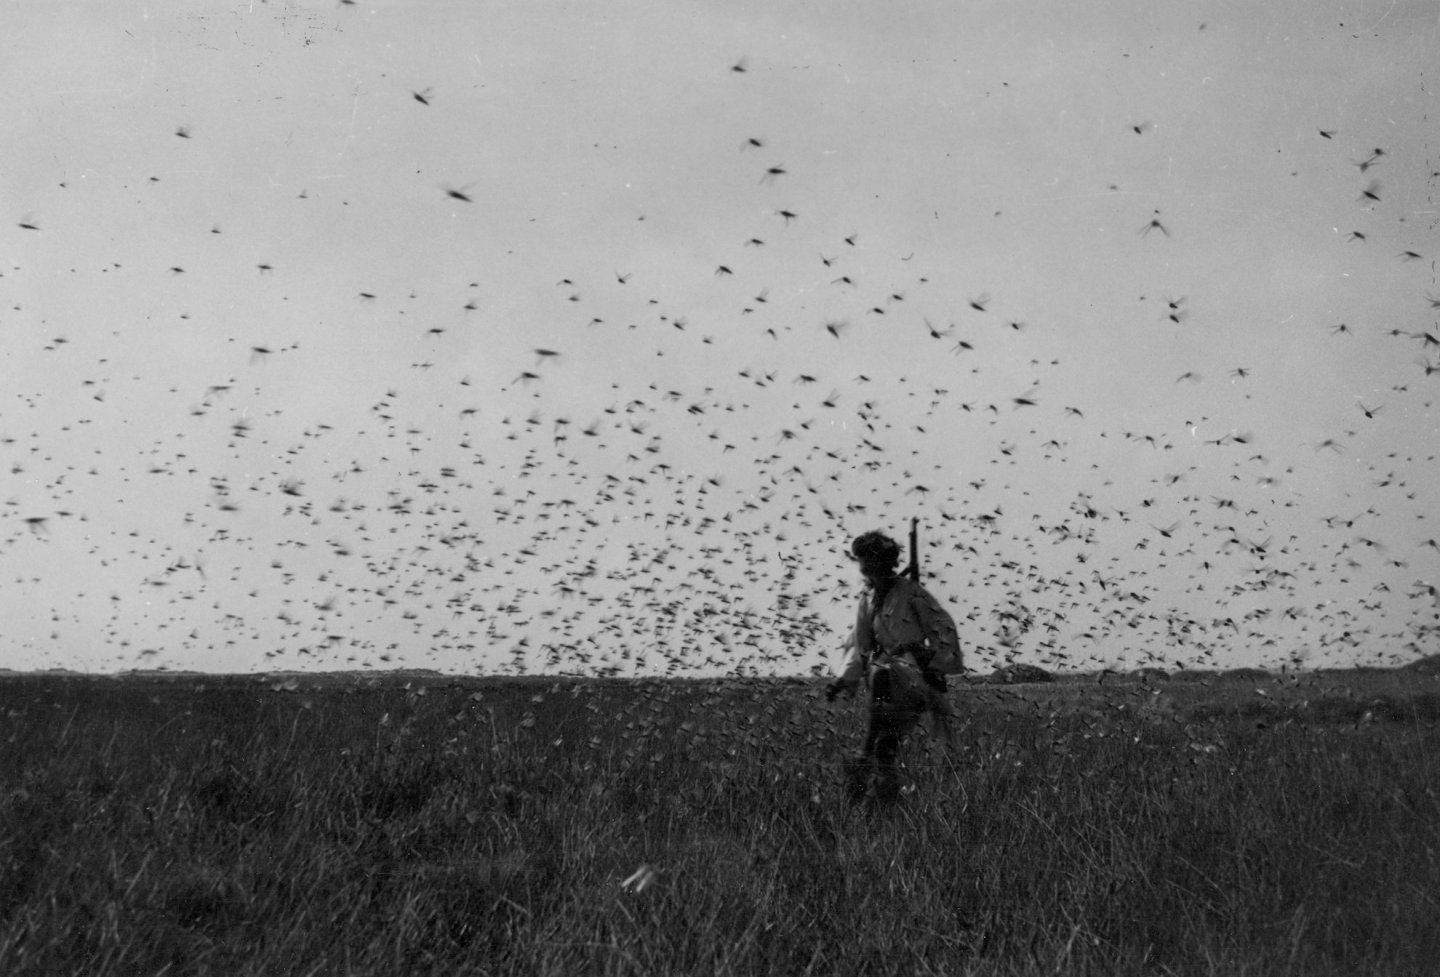 A locust cloud over Juncus maritimus at Imililik, Western Sahara (April, 1944).